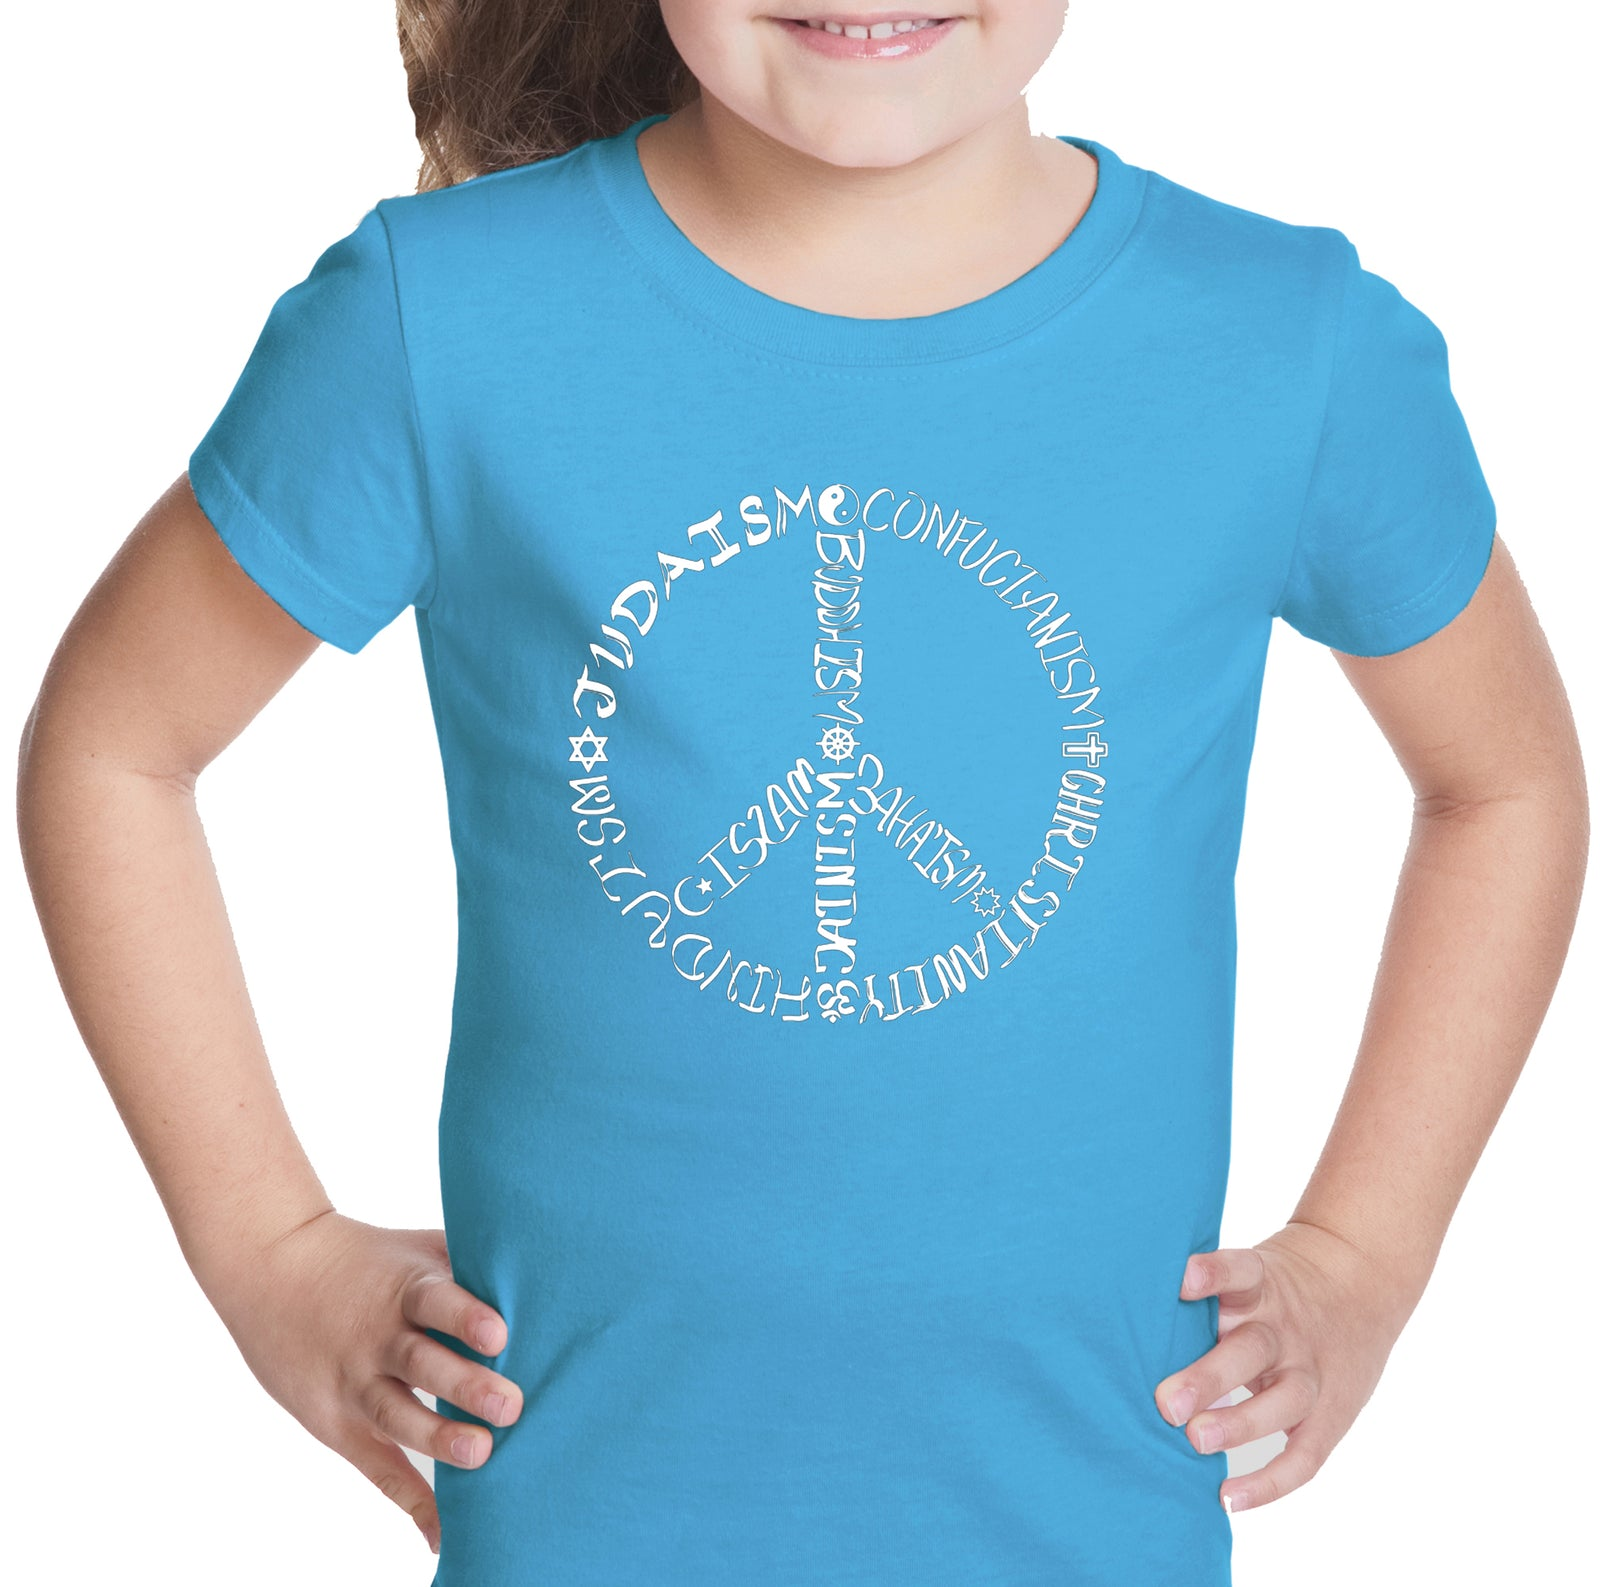 Girl's T-shirt - Different Faiths peace sign